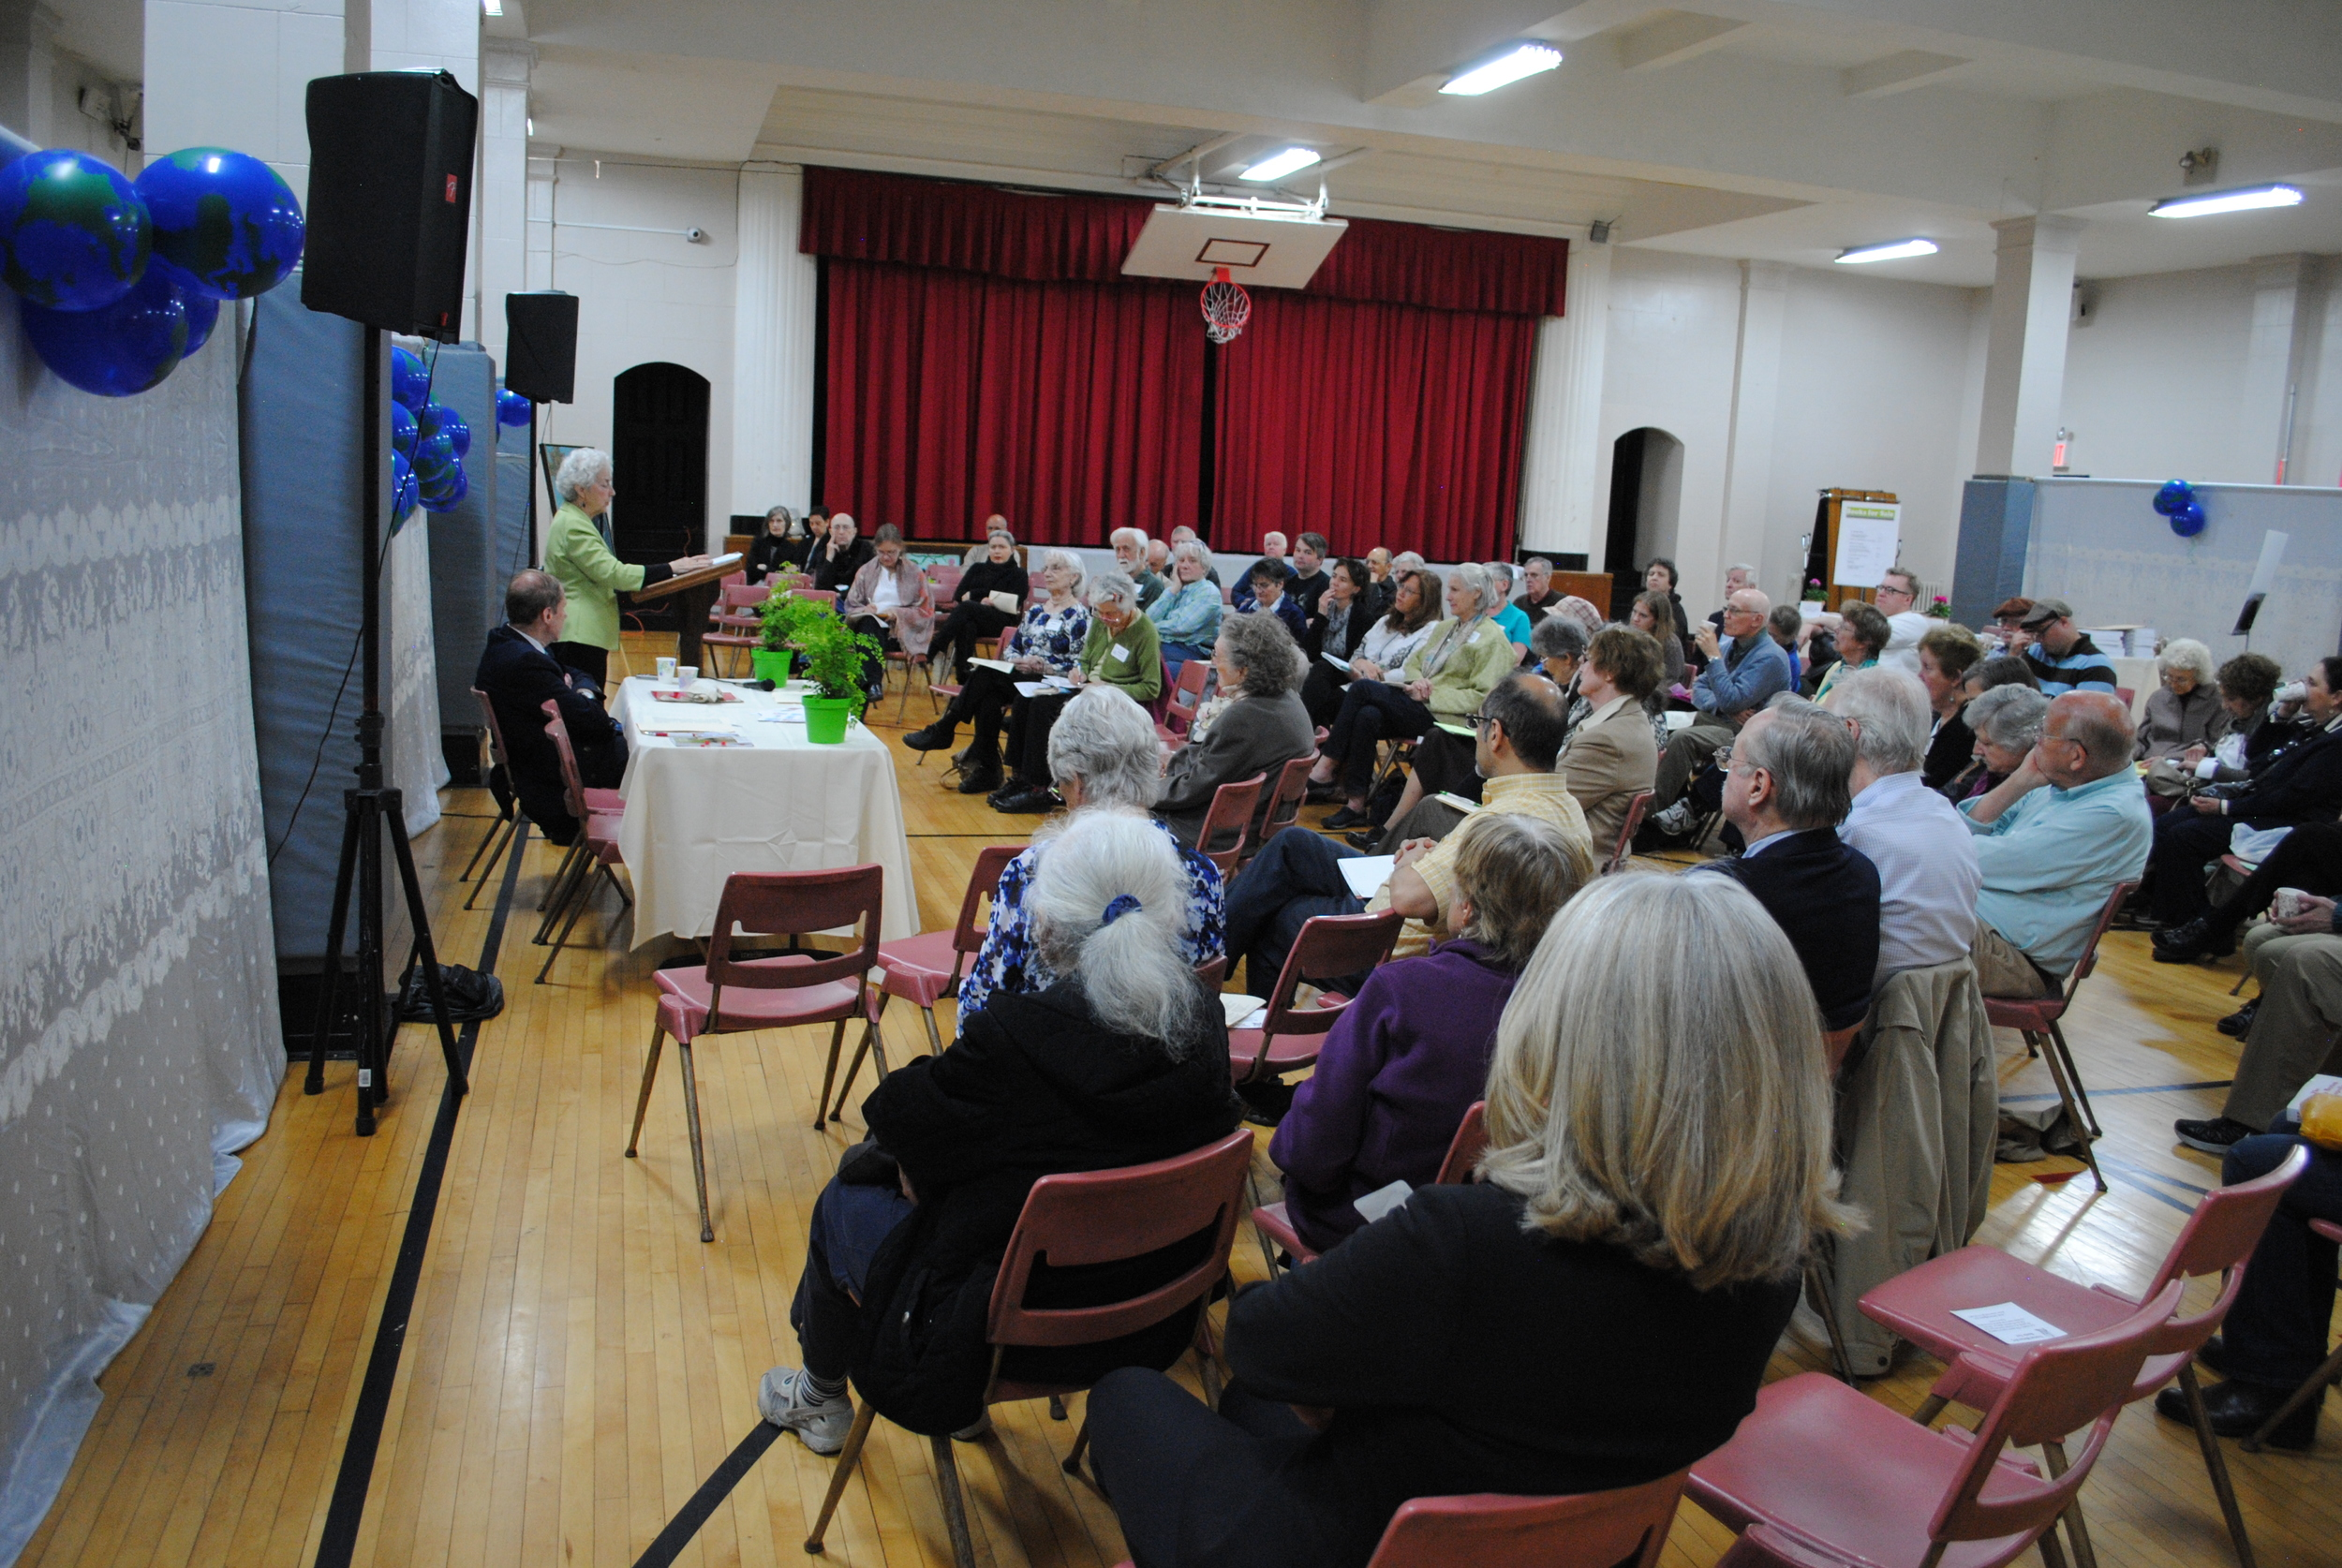 Participants from across NYC gathered for an Earth Day reflection on Merton's ecological vision with speakers Monica Weiss and Patrick O'Connell. April, 2016